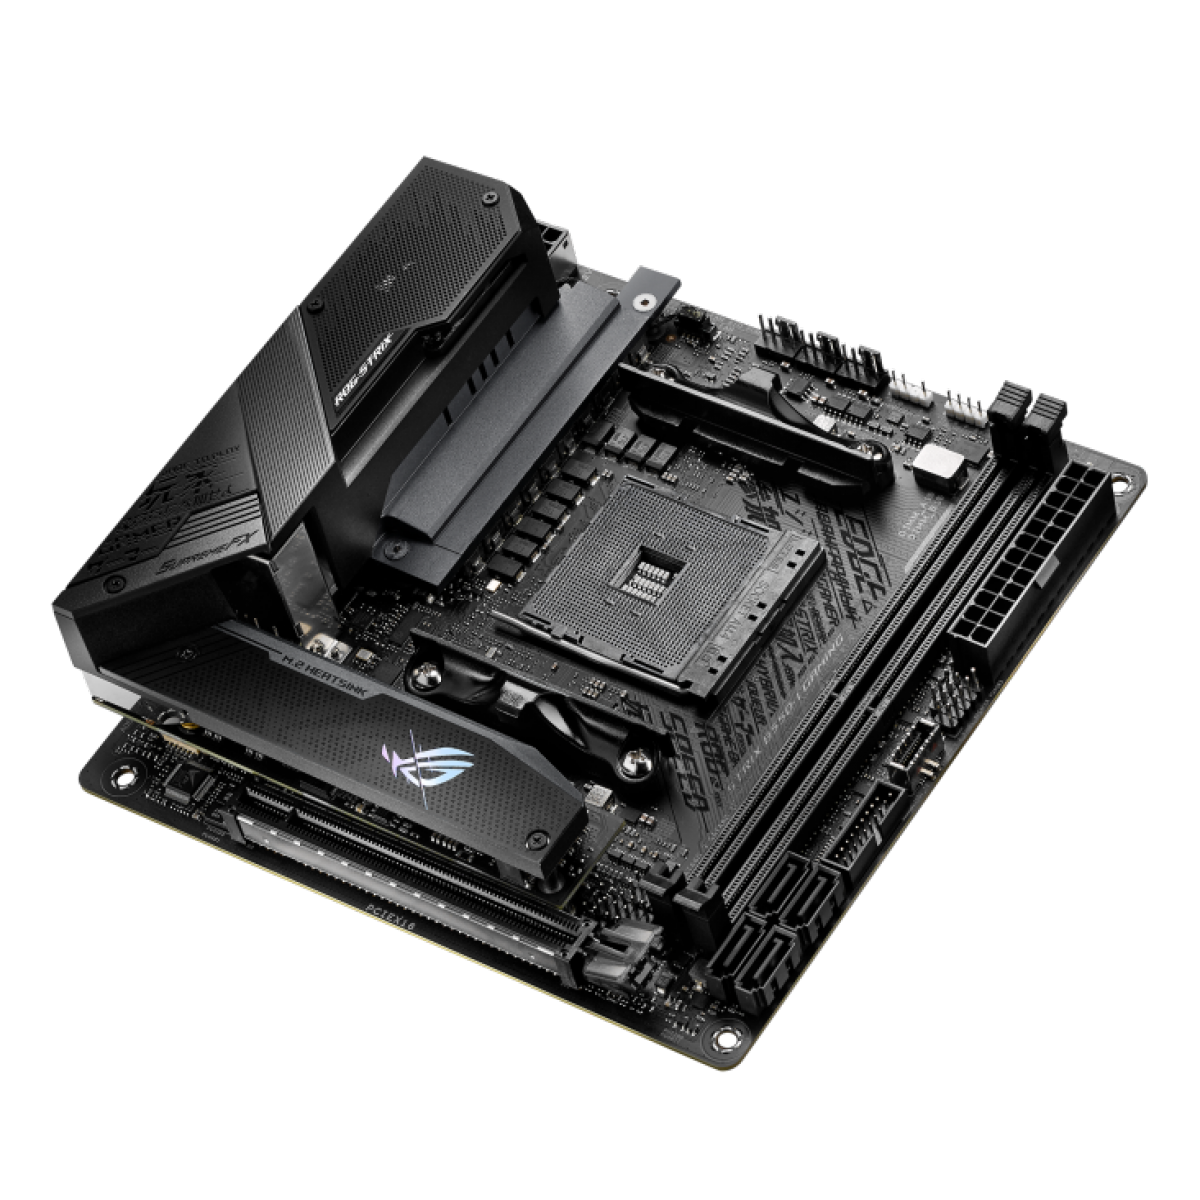 Placa Mãe ASUS ROG Strix B550-I Gaming, Chipset B550, AMD AM4, WI-Fi, Mini-ITX, DDR4, 90MB14L0-M0EAY0